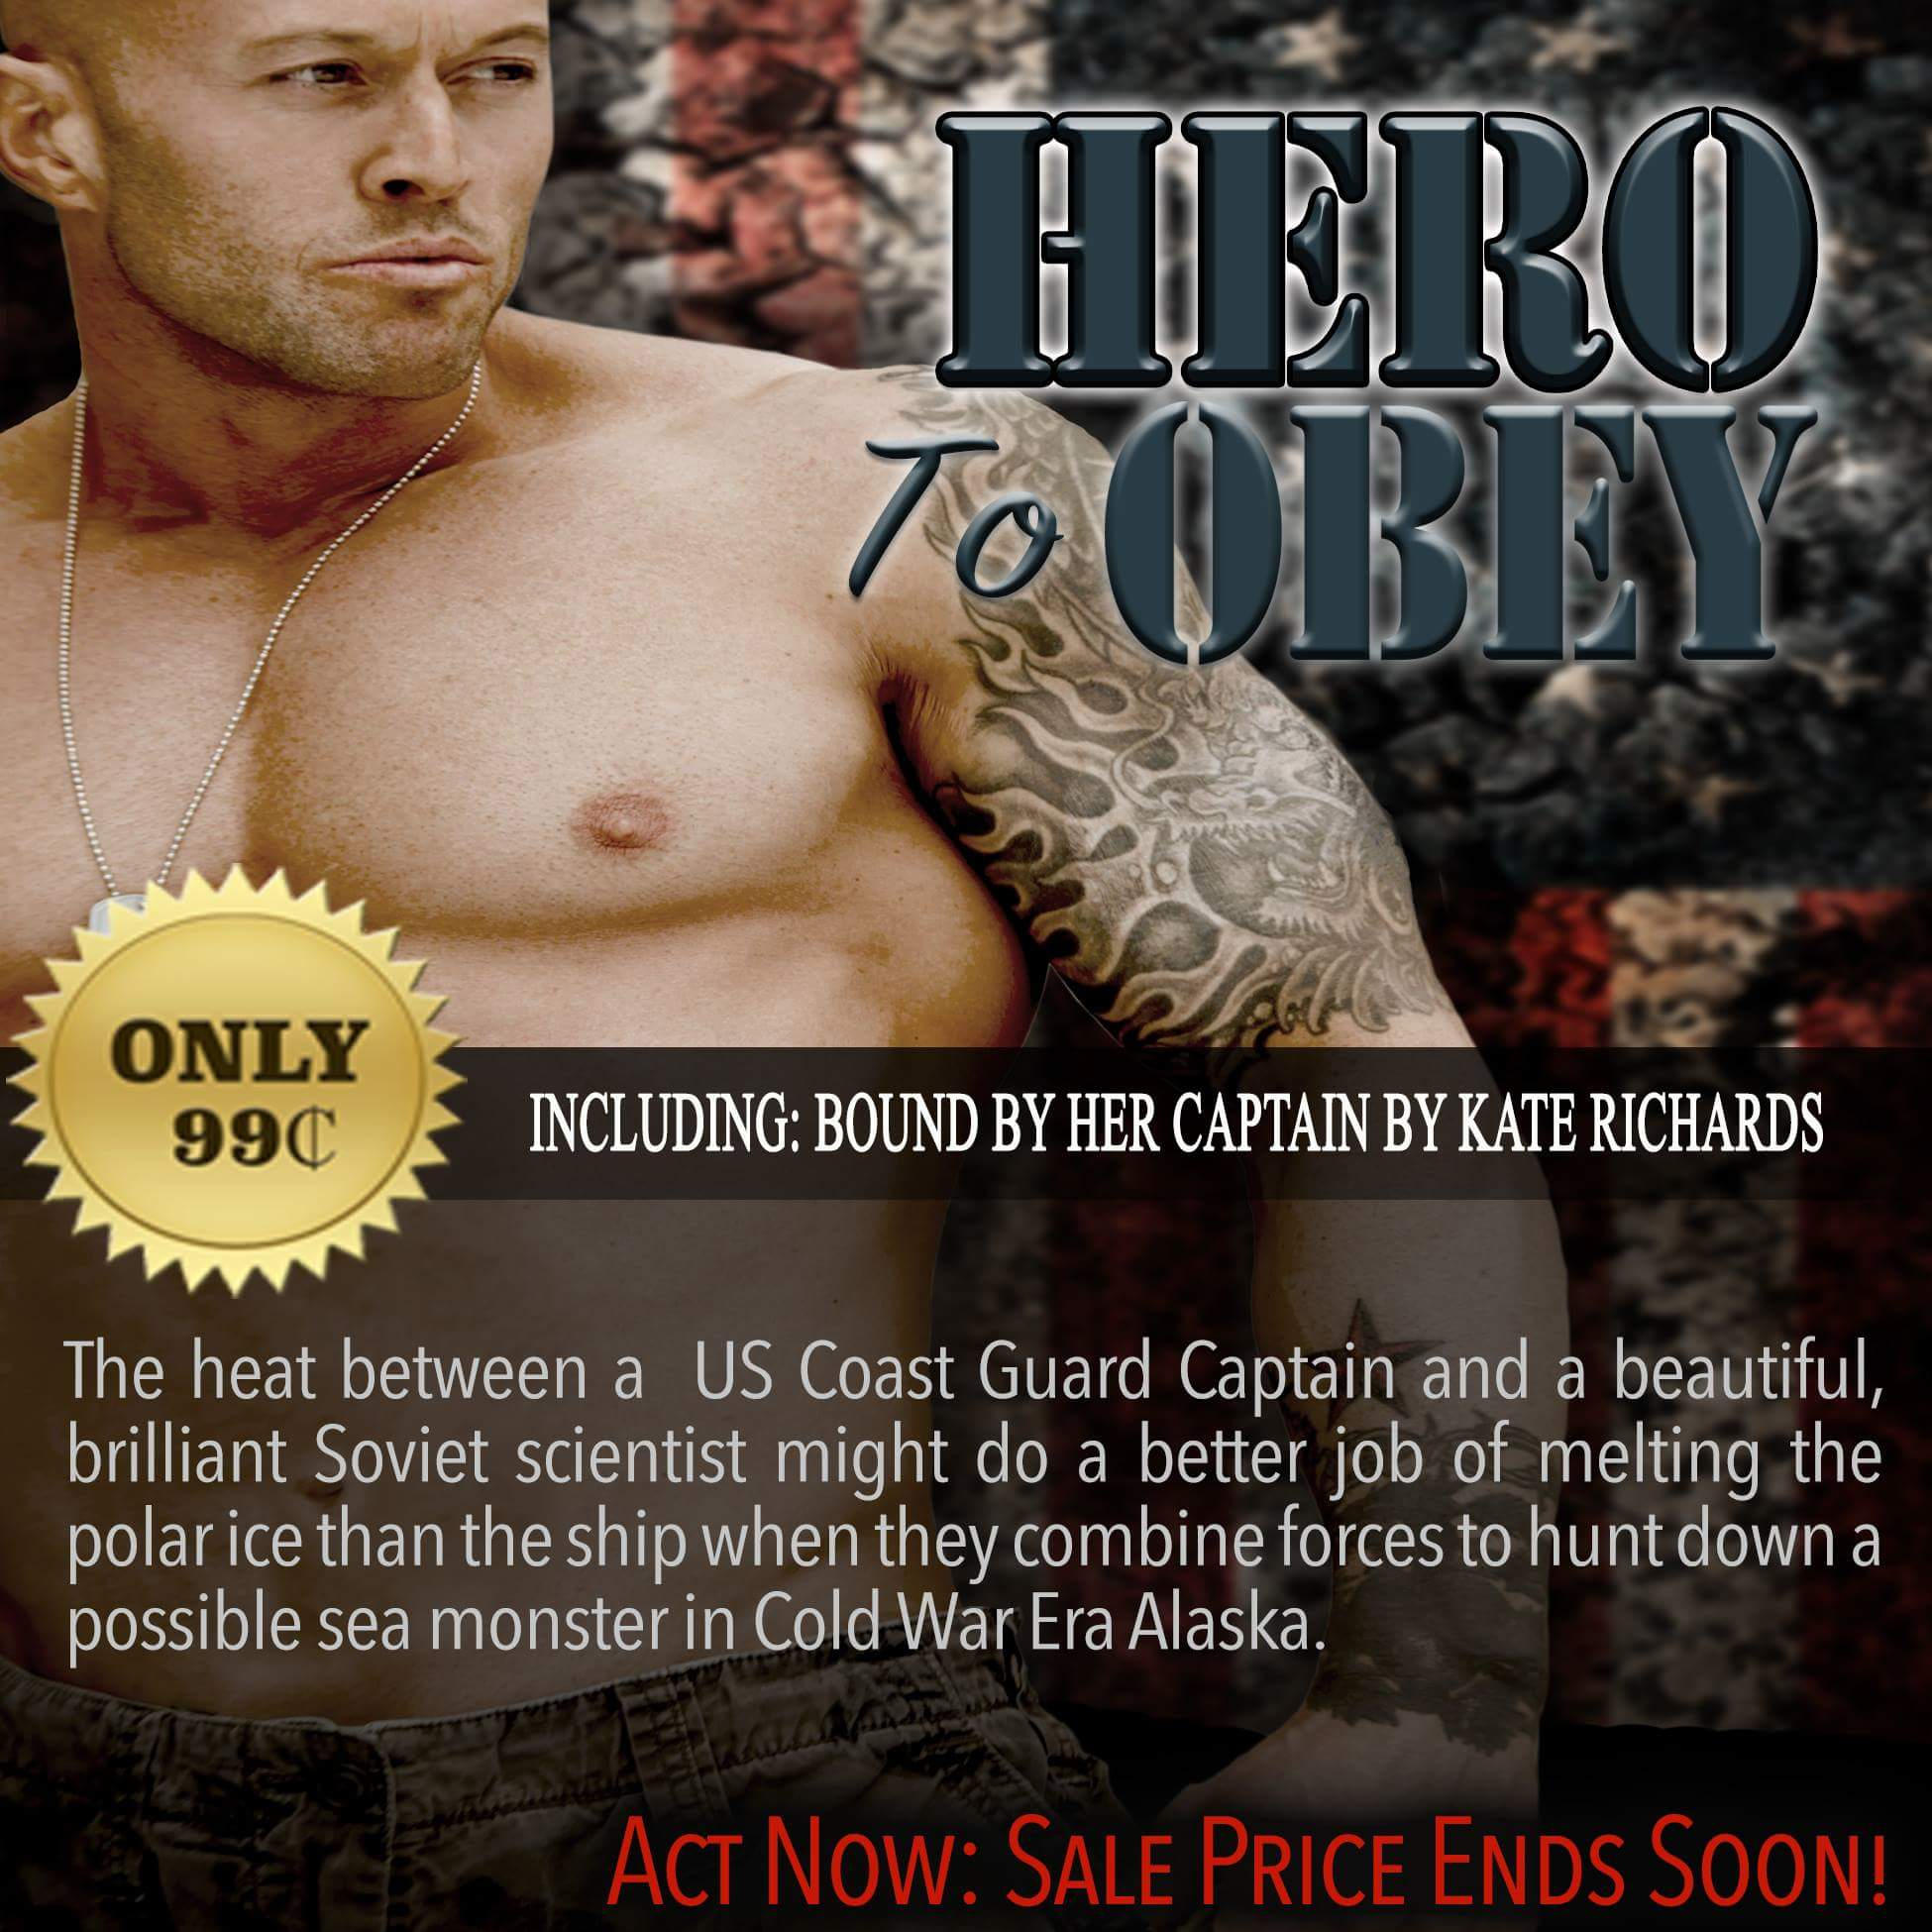 Hero To Obey Book Cover Model Actor John Joseph Quinlan by Kate Richards. #JohnQuinlan #Hero2obey